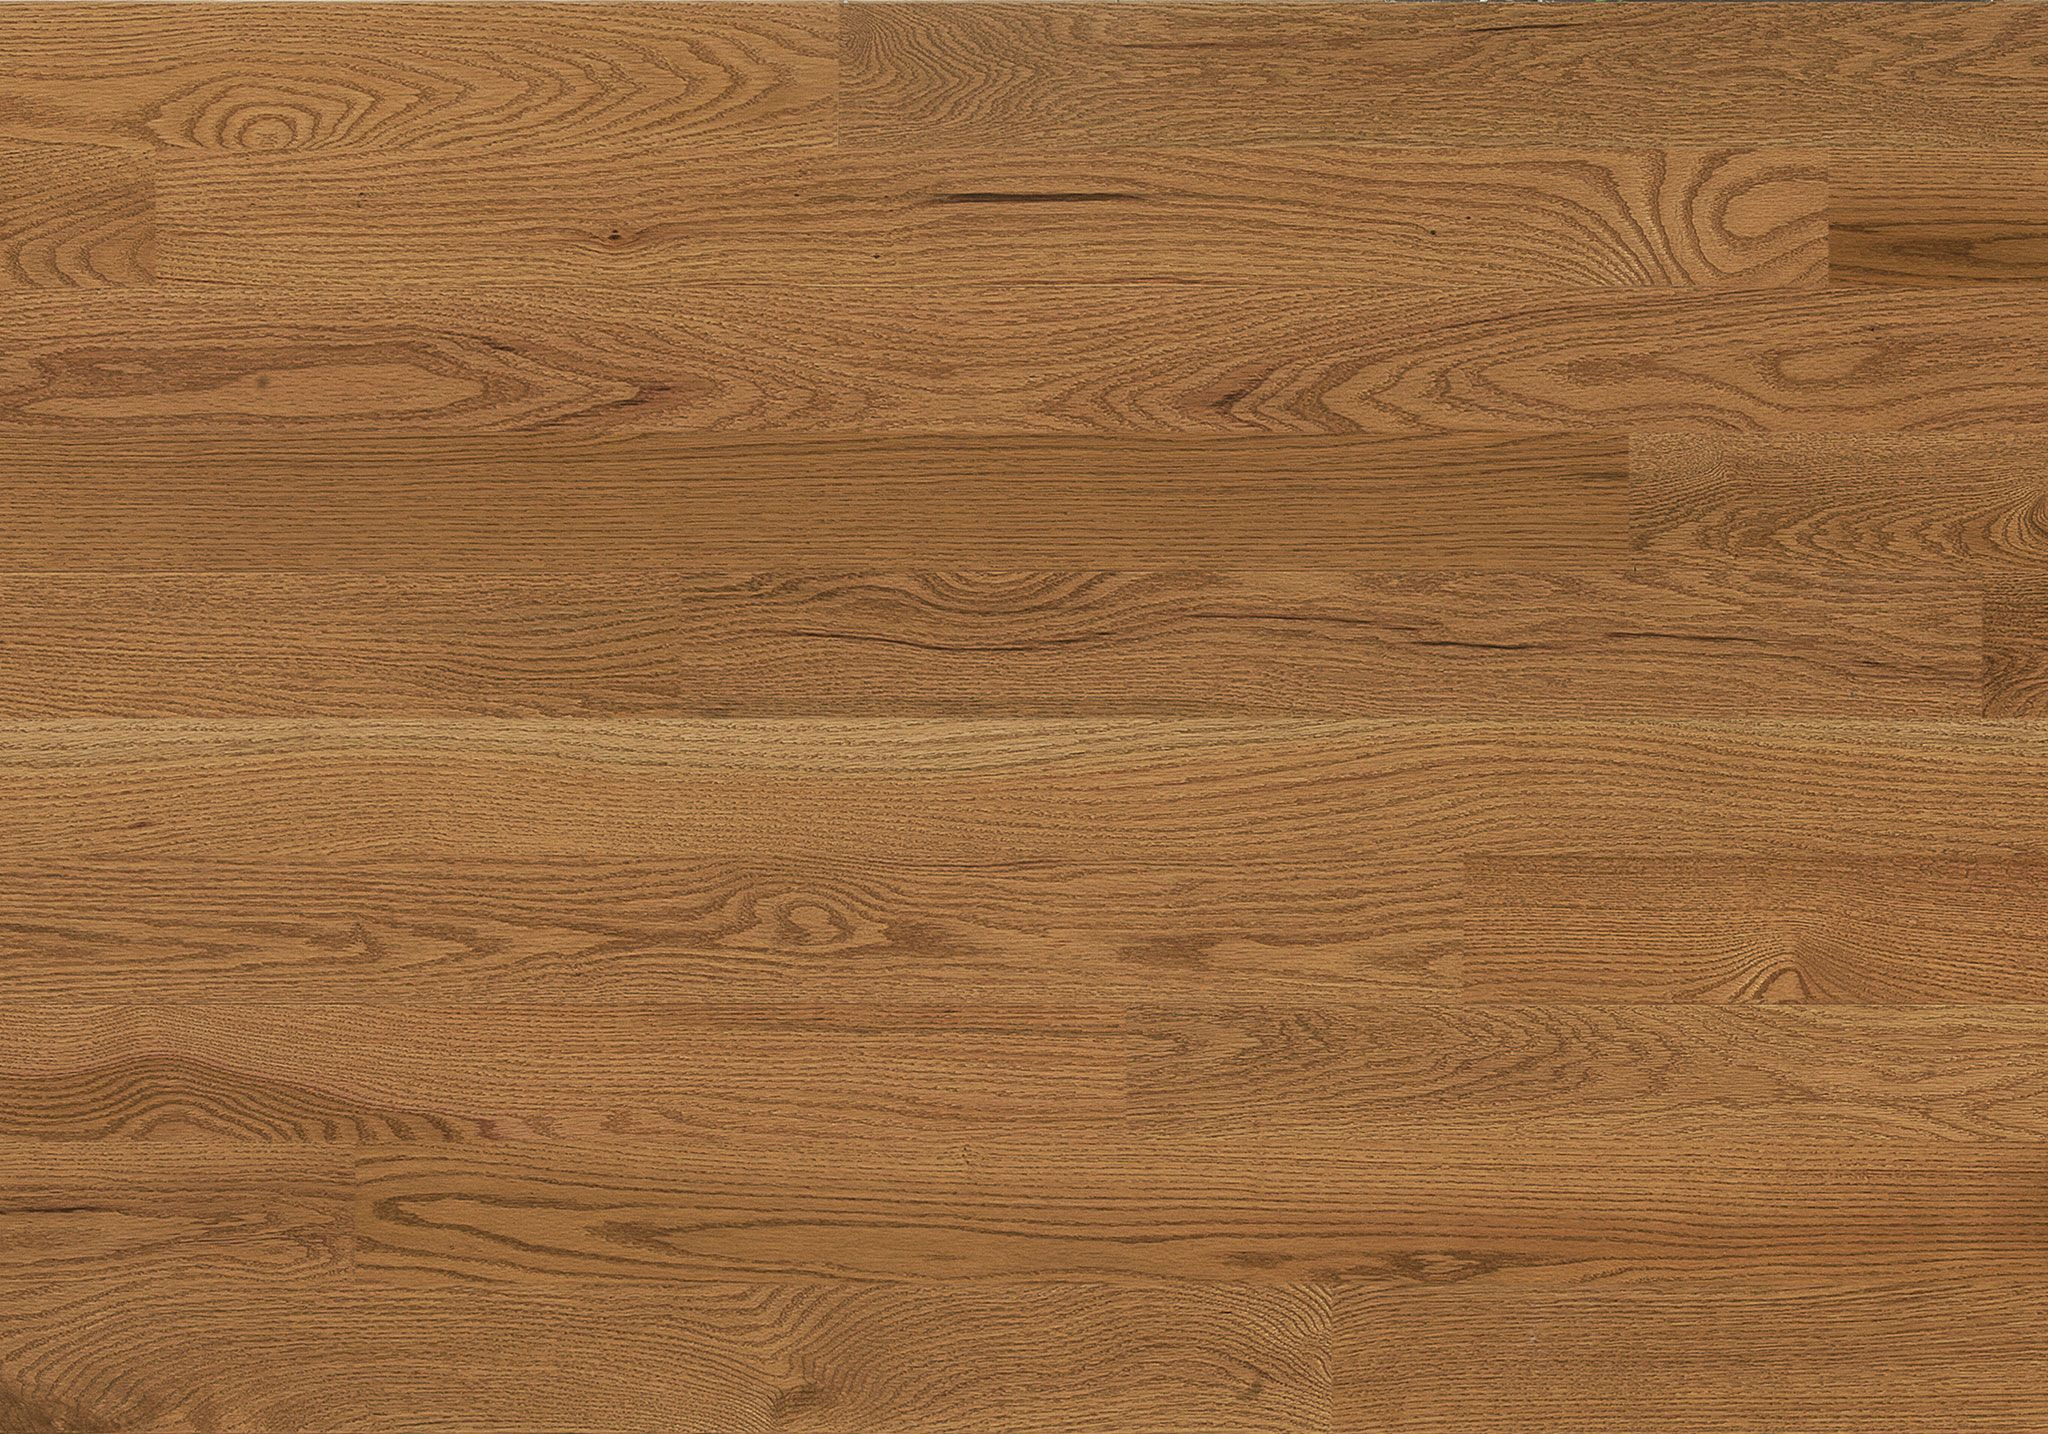 Lauzon Hardwood Flooring Prices Of Natural Floors Cra¨me Br Lae Essential Red Oak Tradition Lauzon with Natural Floors Cra¨me Br Lae Essential Red Oak Tradition Lauzon Hardwood